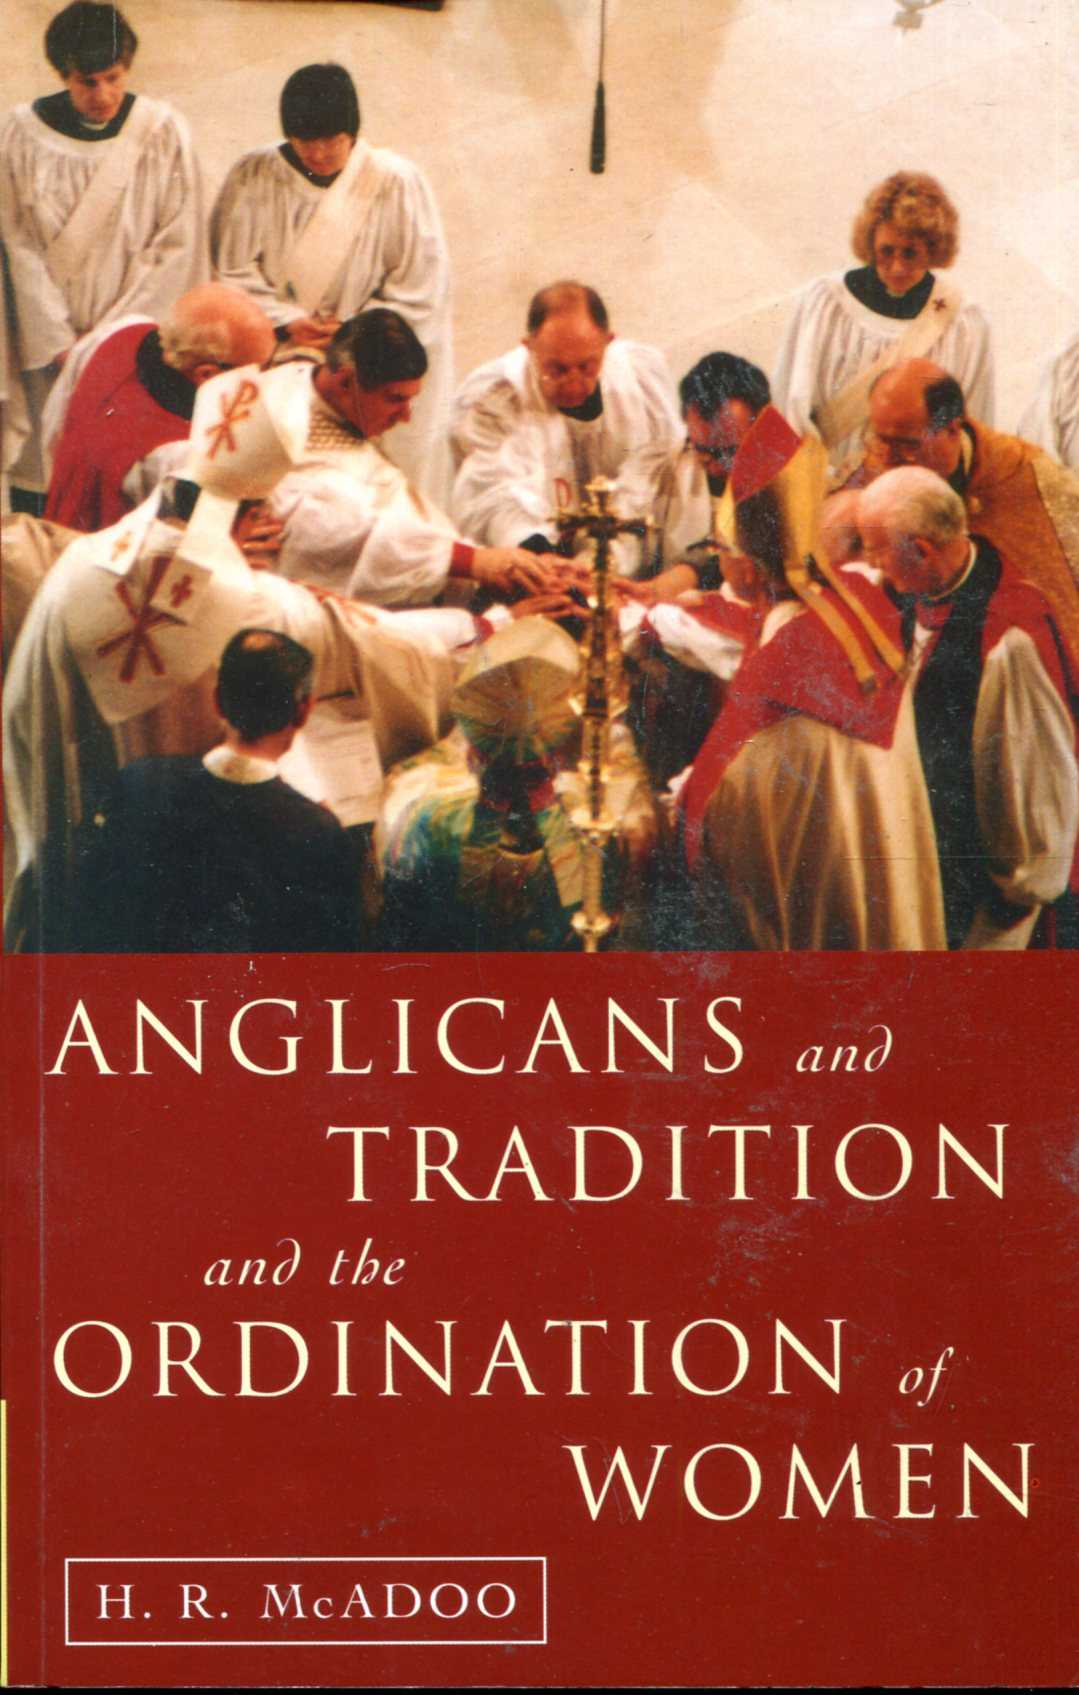 Image for Anglicans and Tradition and the Ordination of Women